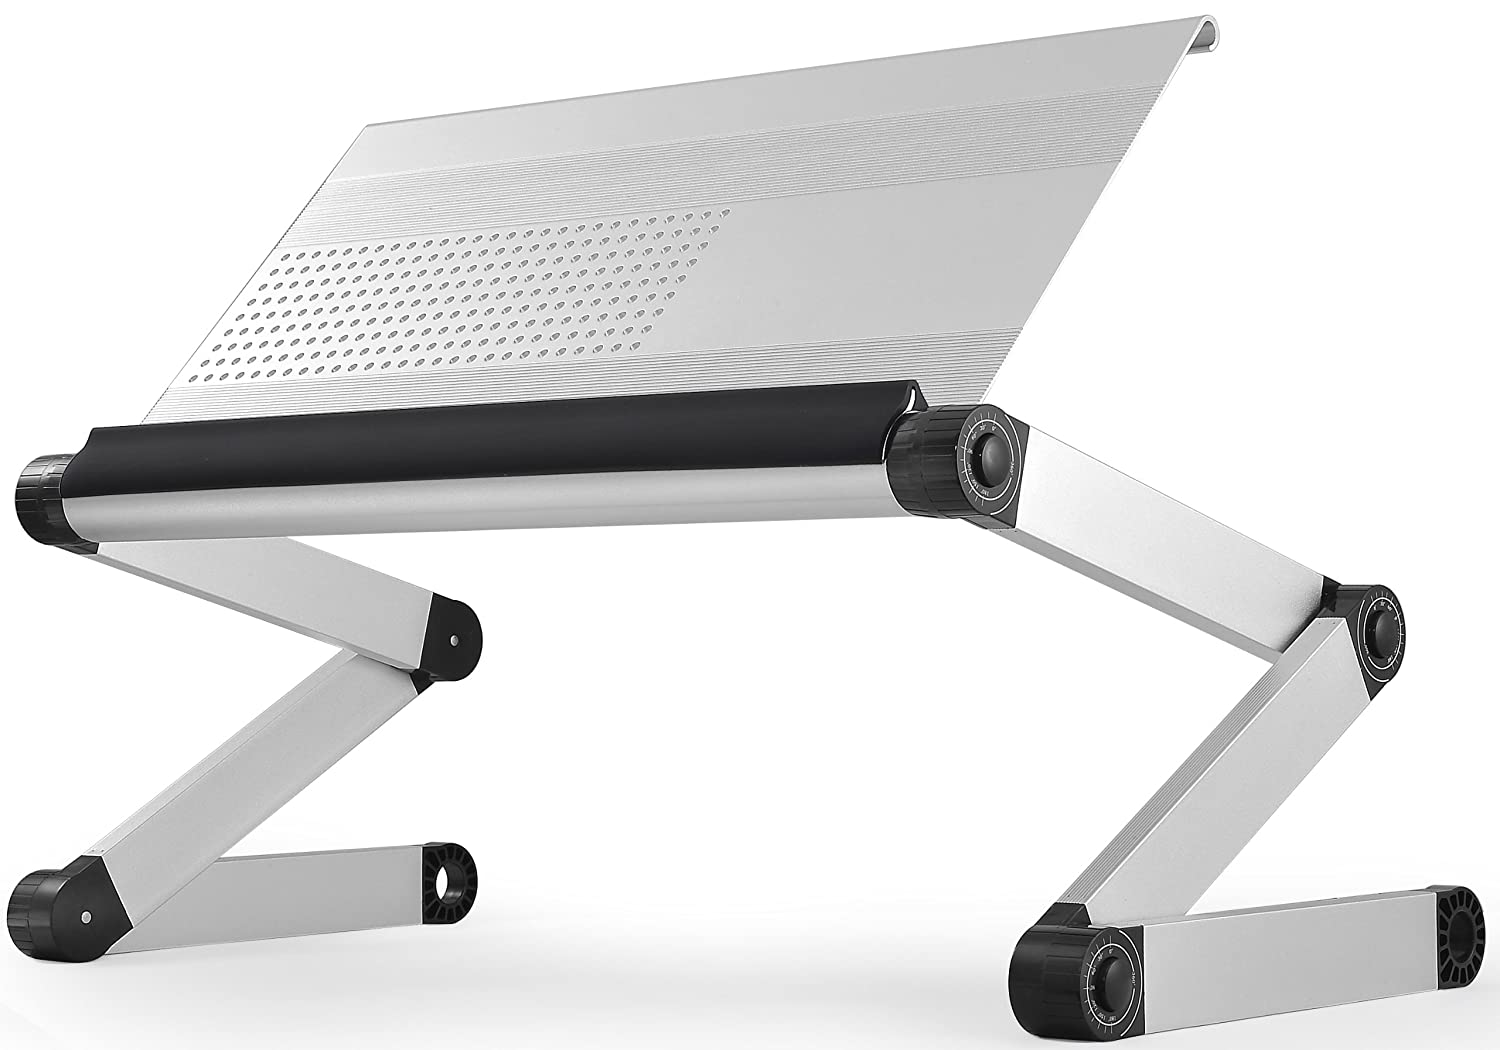 Amazoncom WorkEZ Executive ergonomic laptop stand monitor